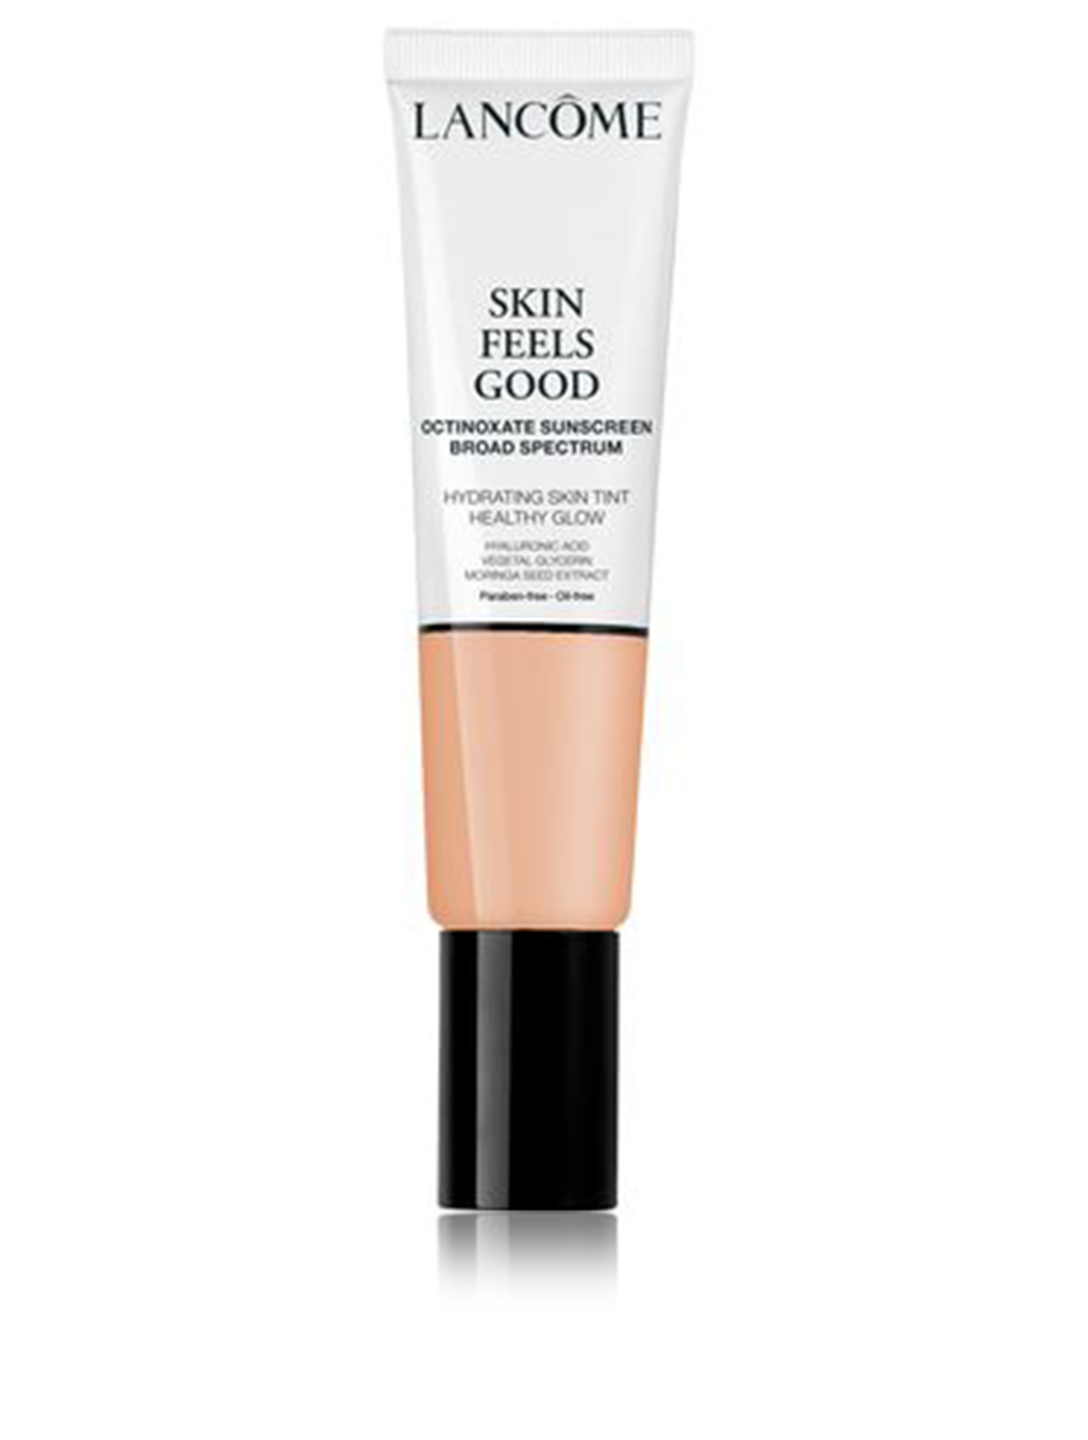 LANCÔME Skin Feels Good Beauty Neutral